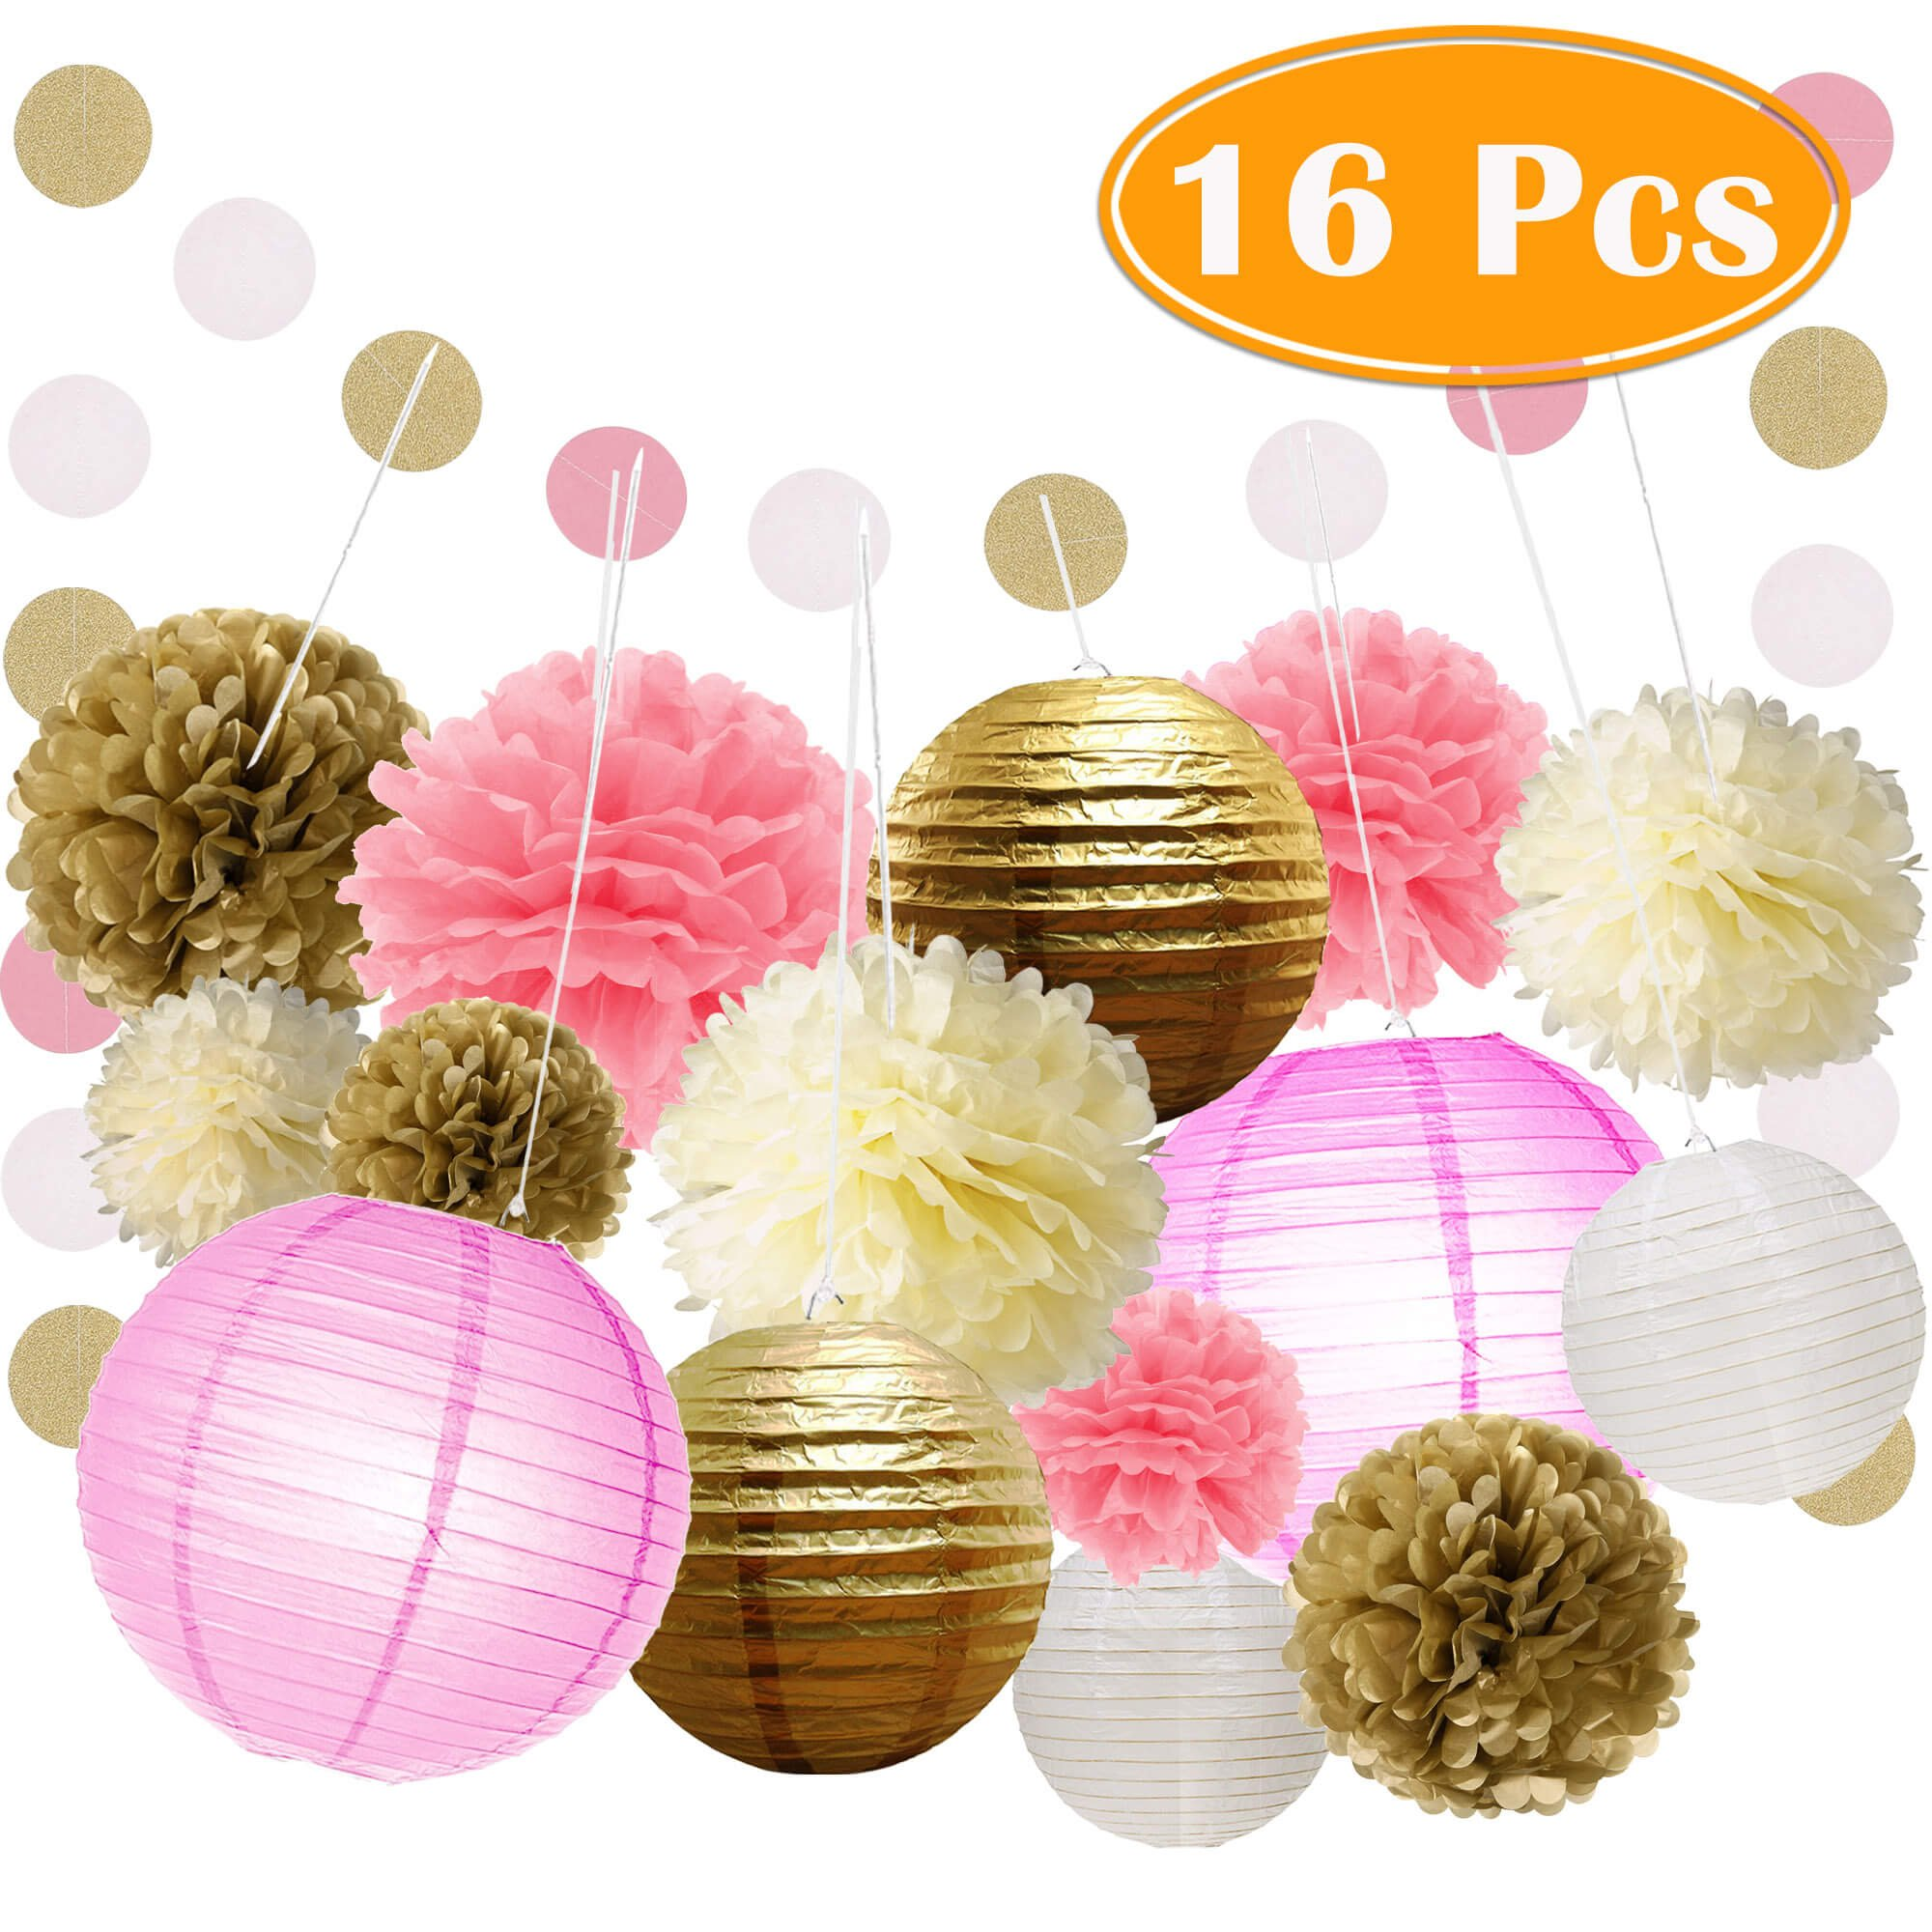 Paxcoo 16 Pcs Pink and Gold Party Supplies with Paper Lanterns and Tissue Pom Poms for 1st Baby Girl Birthday Decorations